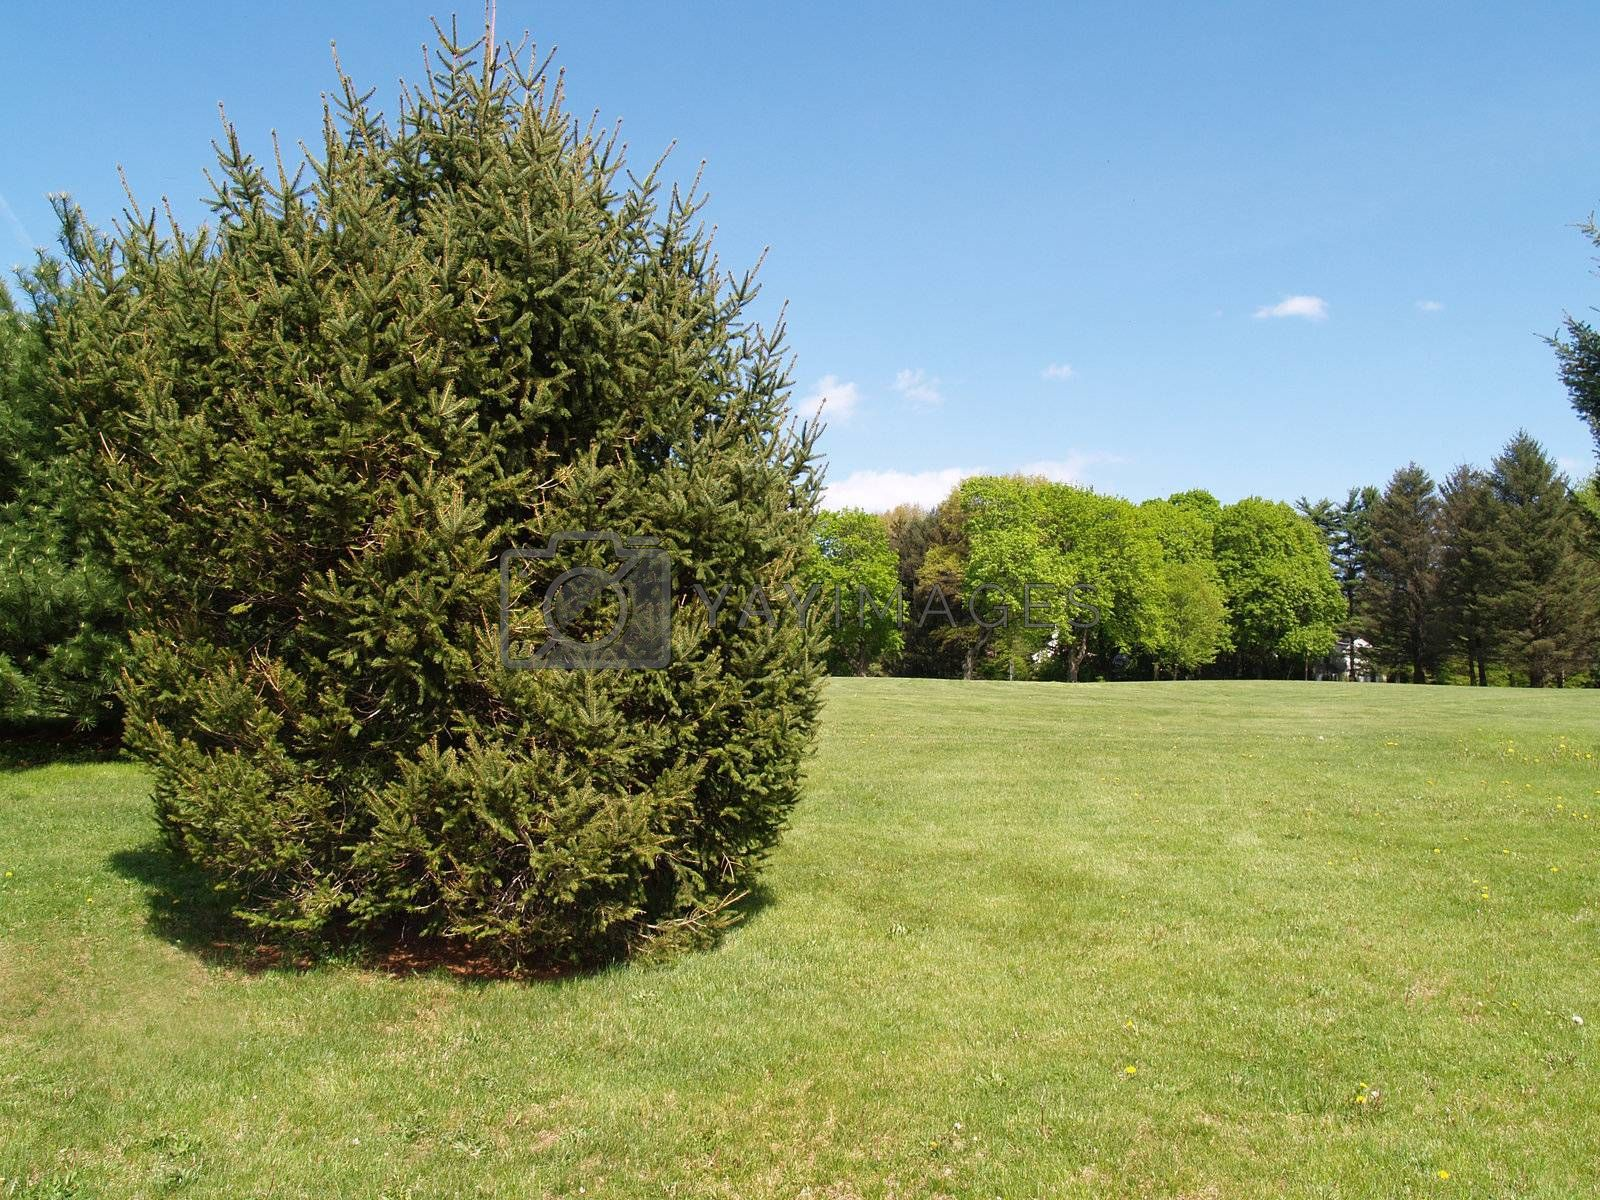 An evergreen tree by a green lawn with a bright blue sky in the background.